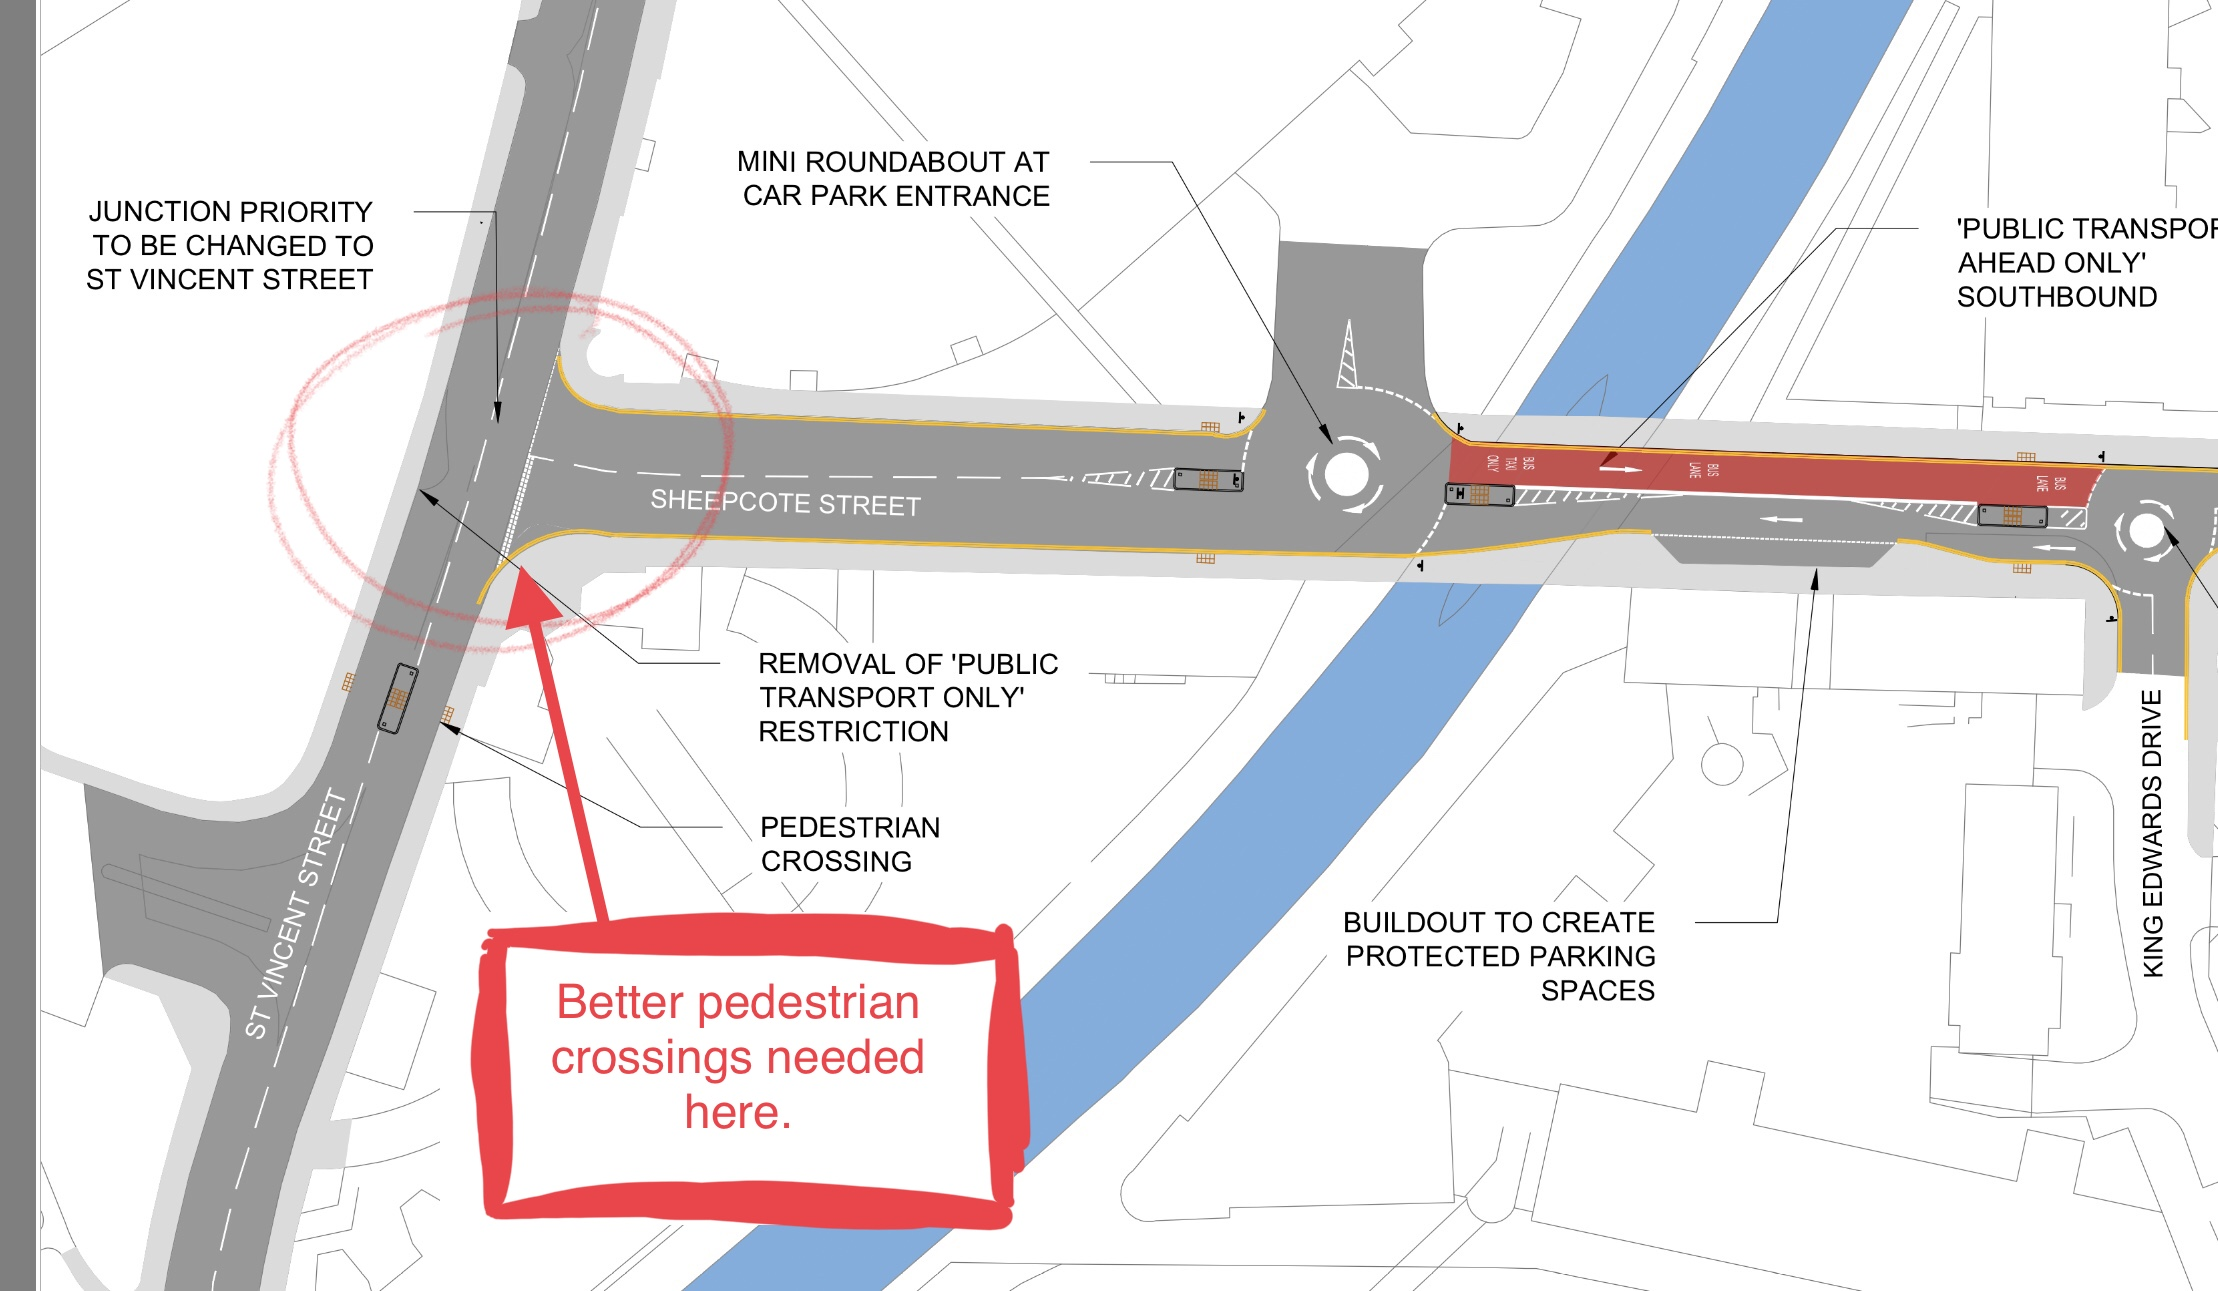 Proposed changes to St Vincent Street / Sheepcote Street junction